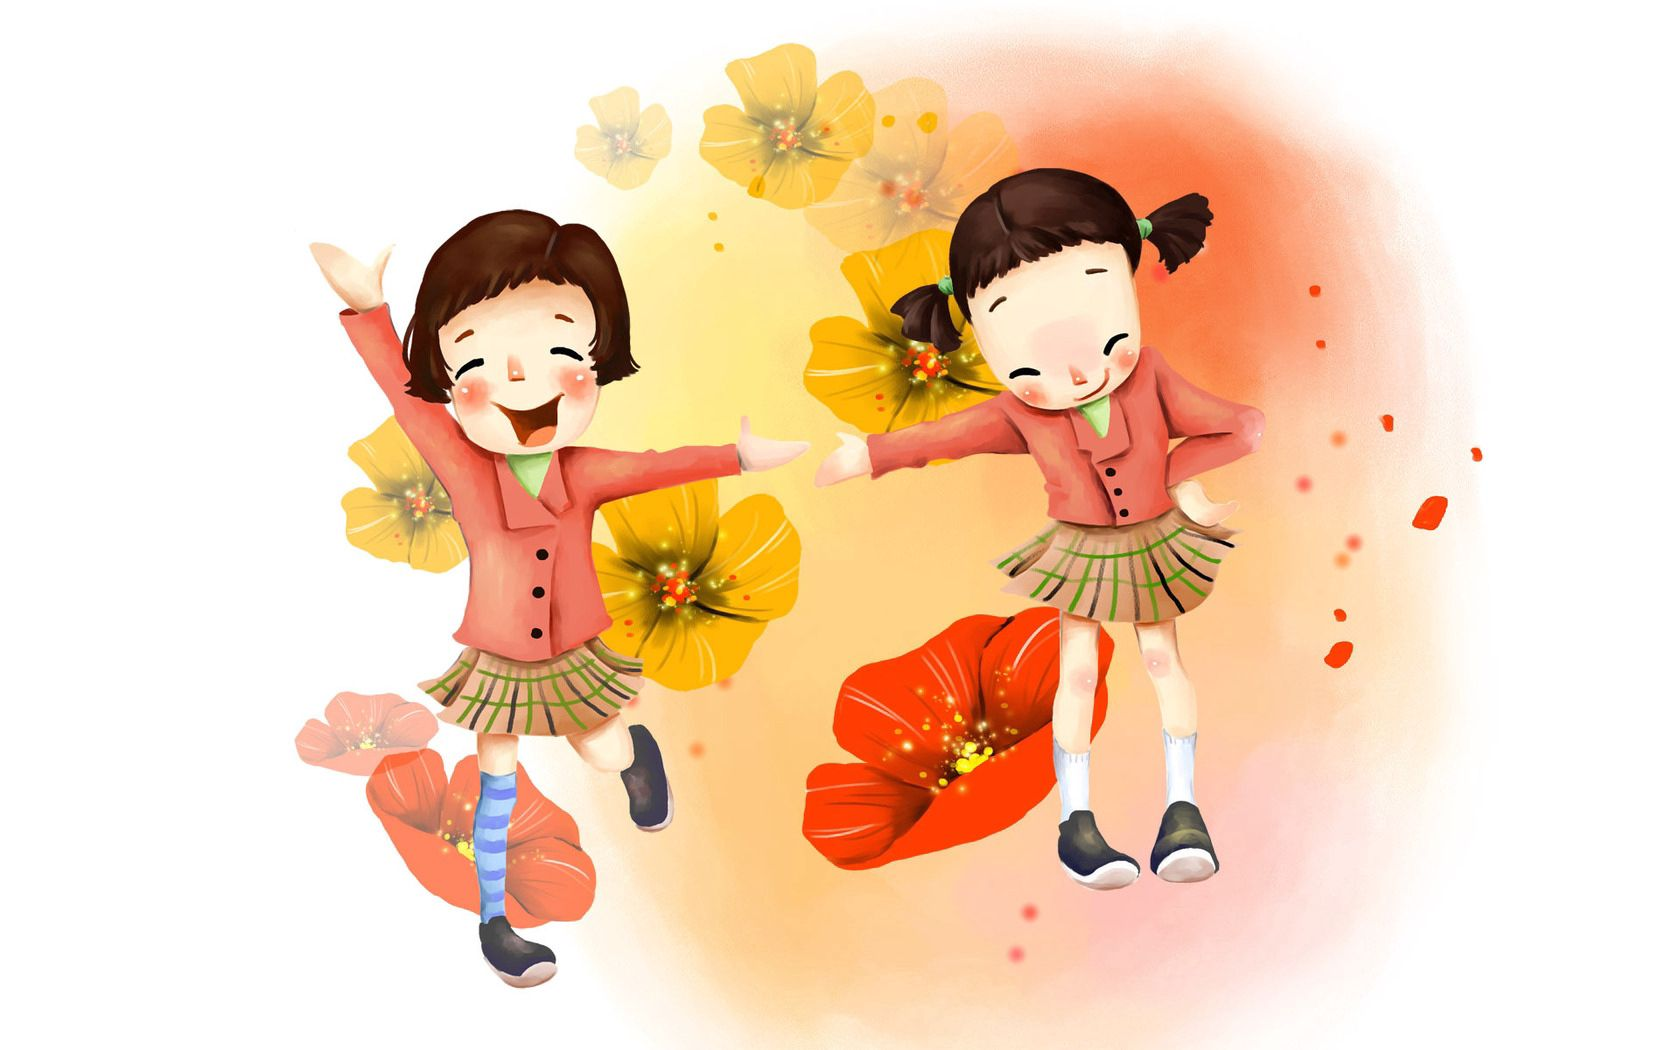 124608 download wallpaper Miscellanea, Miscellaneous, Picture, Drawing, Girls, Joy, Laugh, Laughter, Skirts, Flowers screensavers and pictures for free